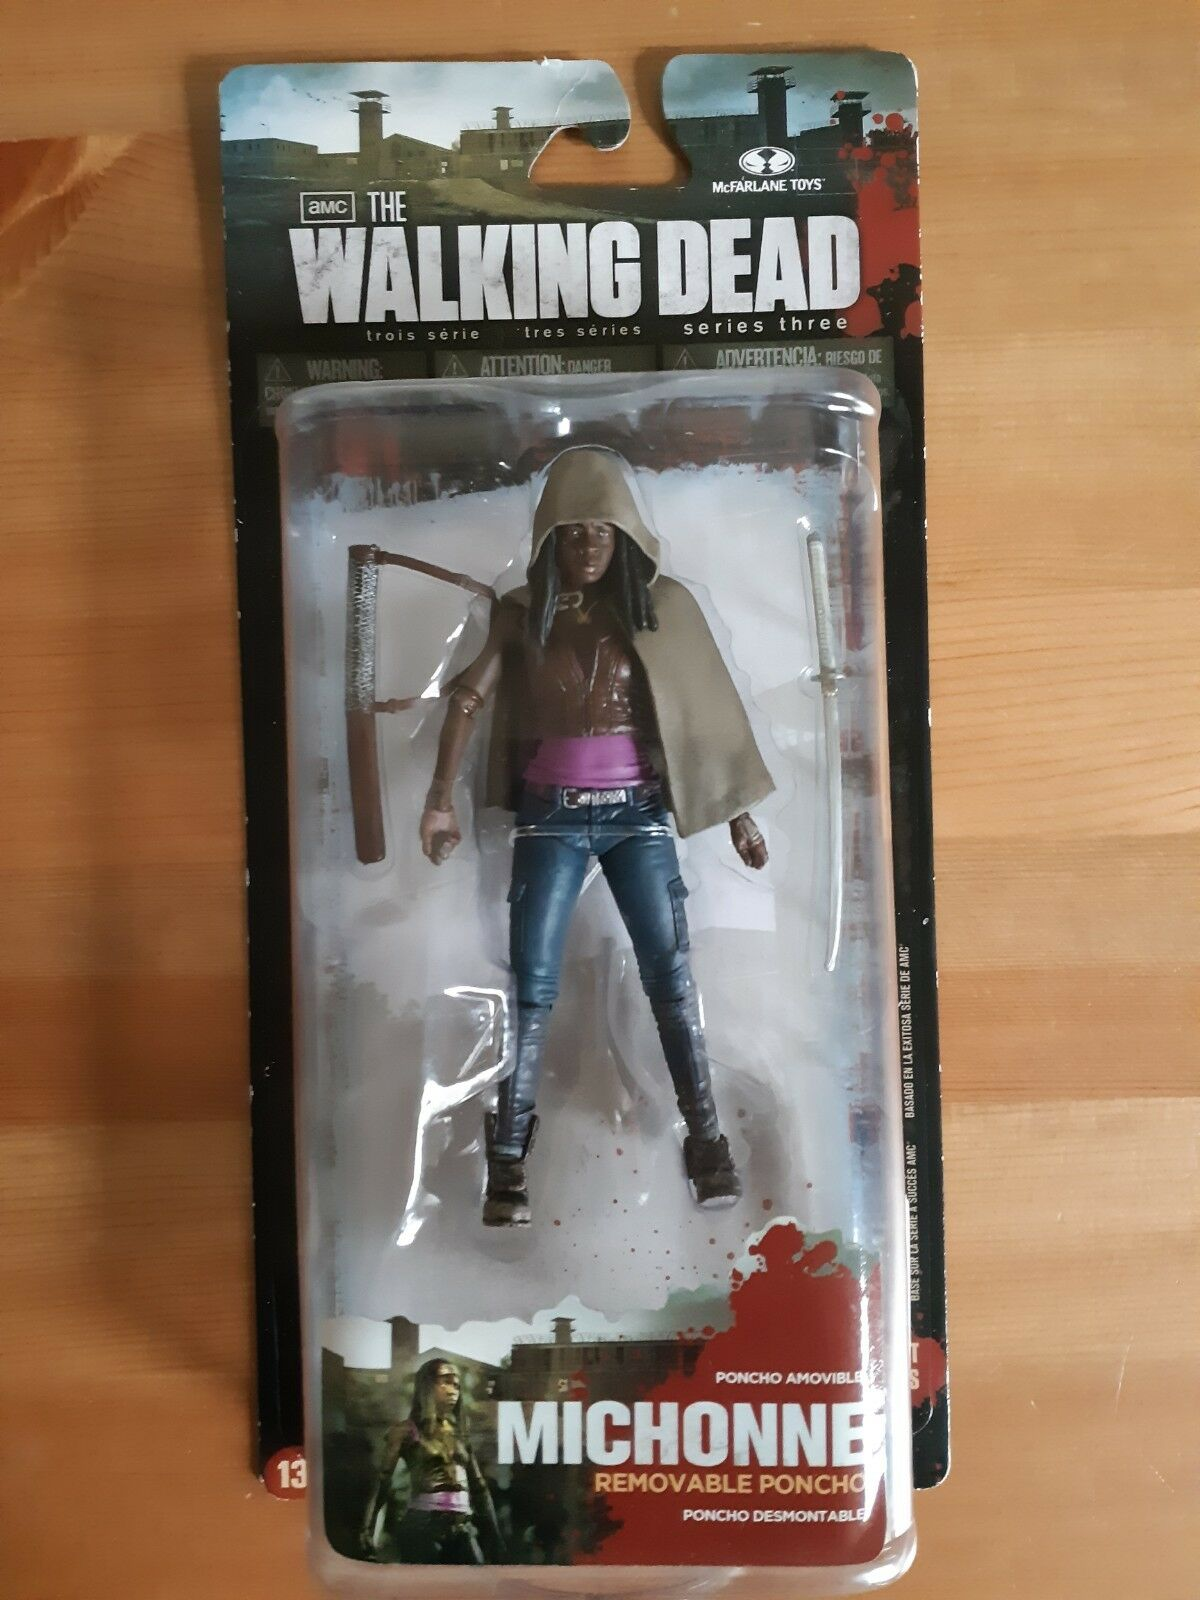 The Walking Dead Series 3 Action Figure - Michonne BRAND NEW - McFarlane Toys